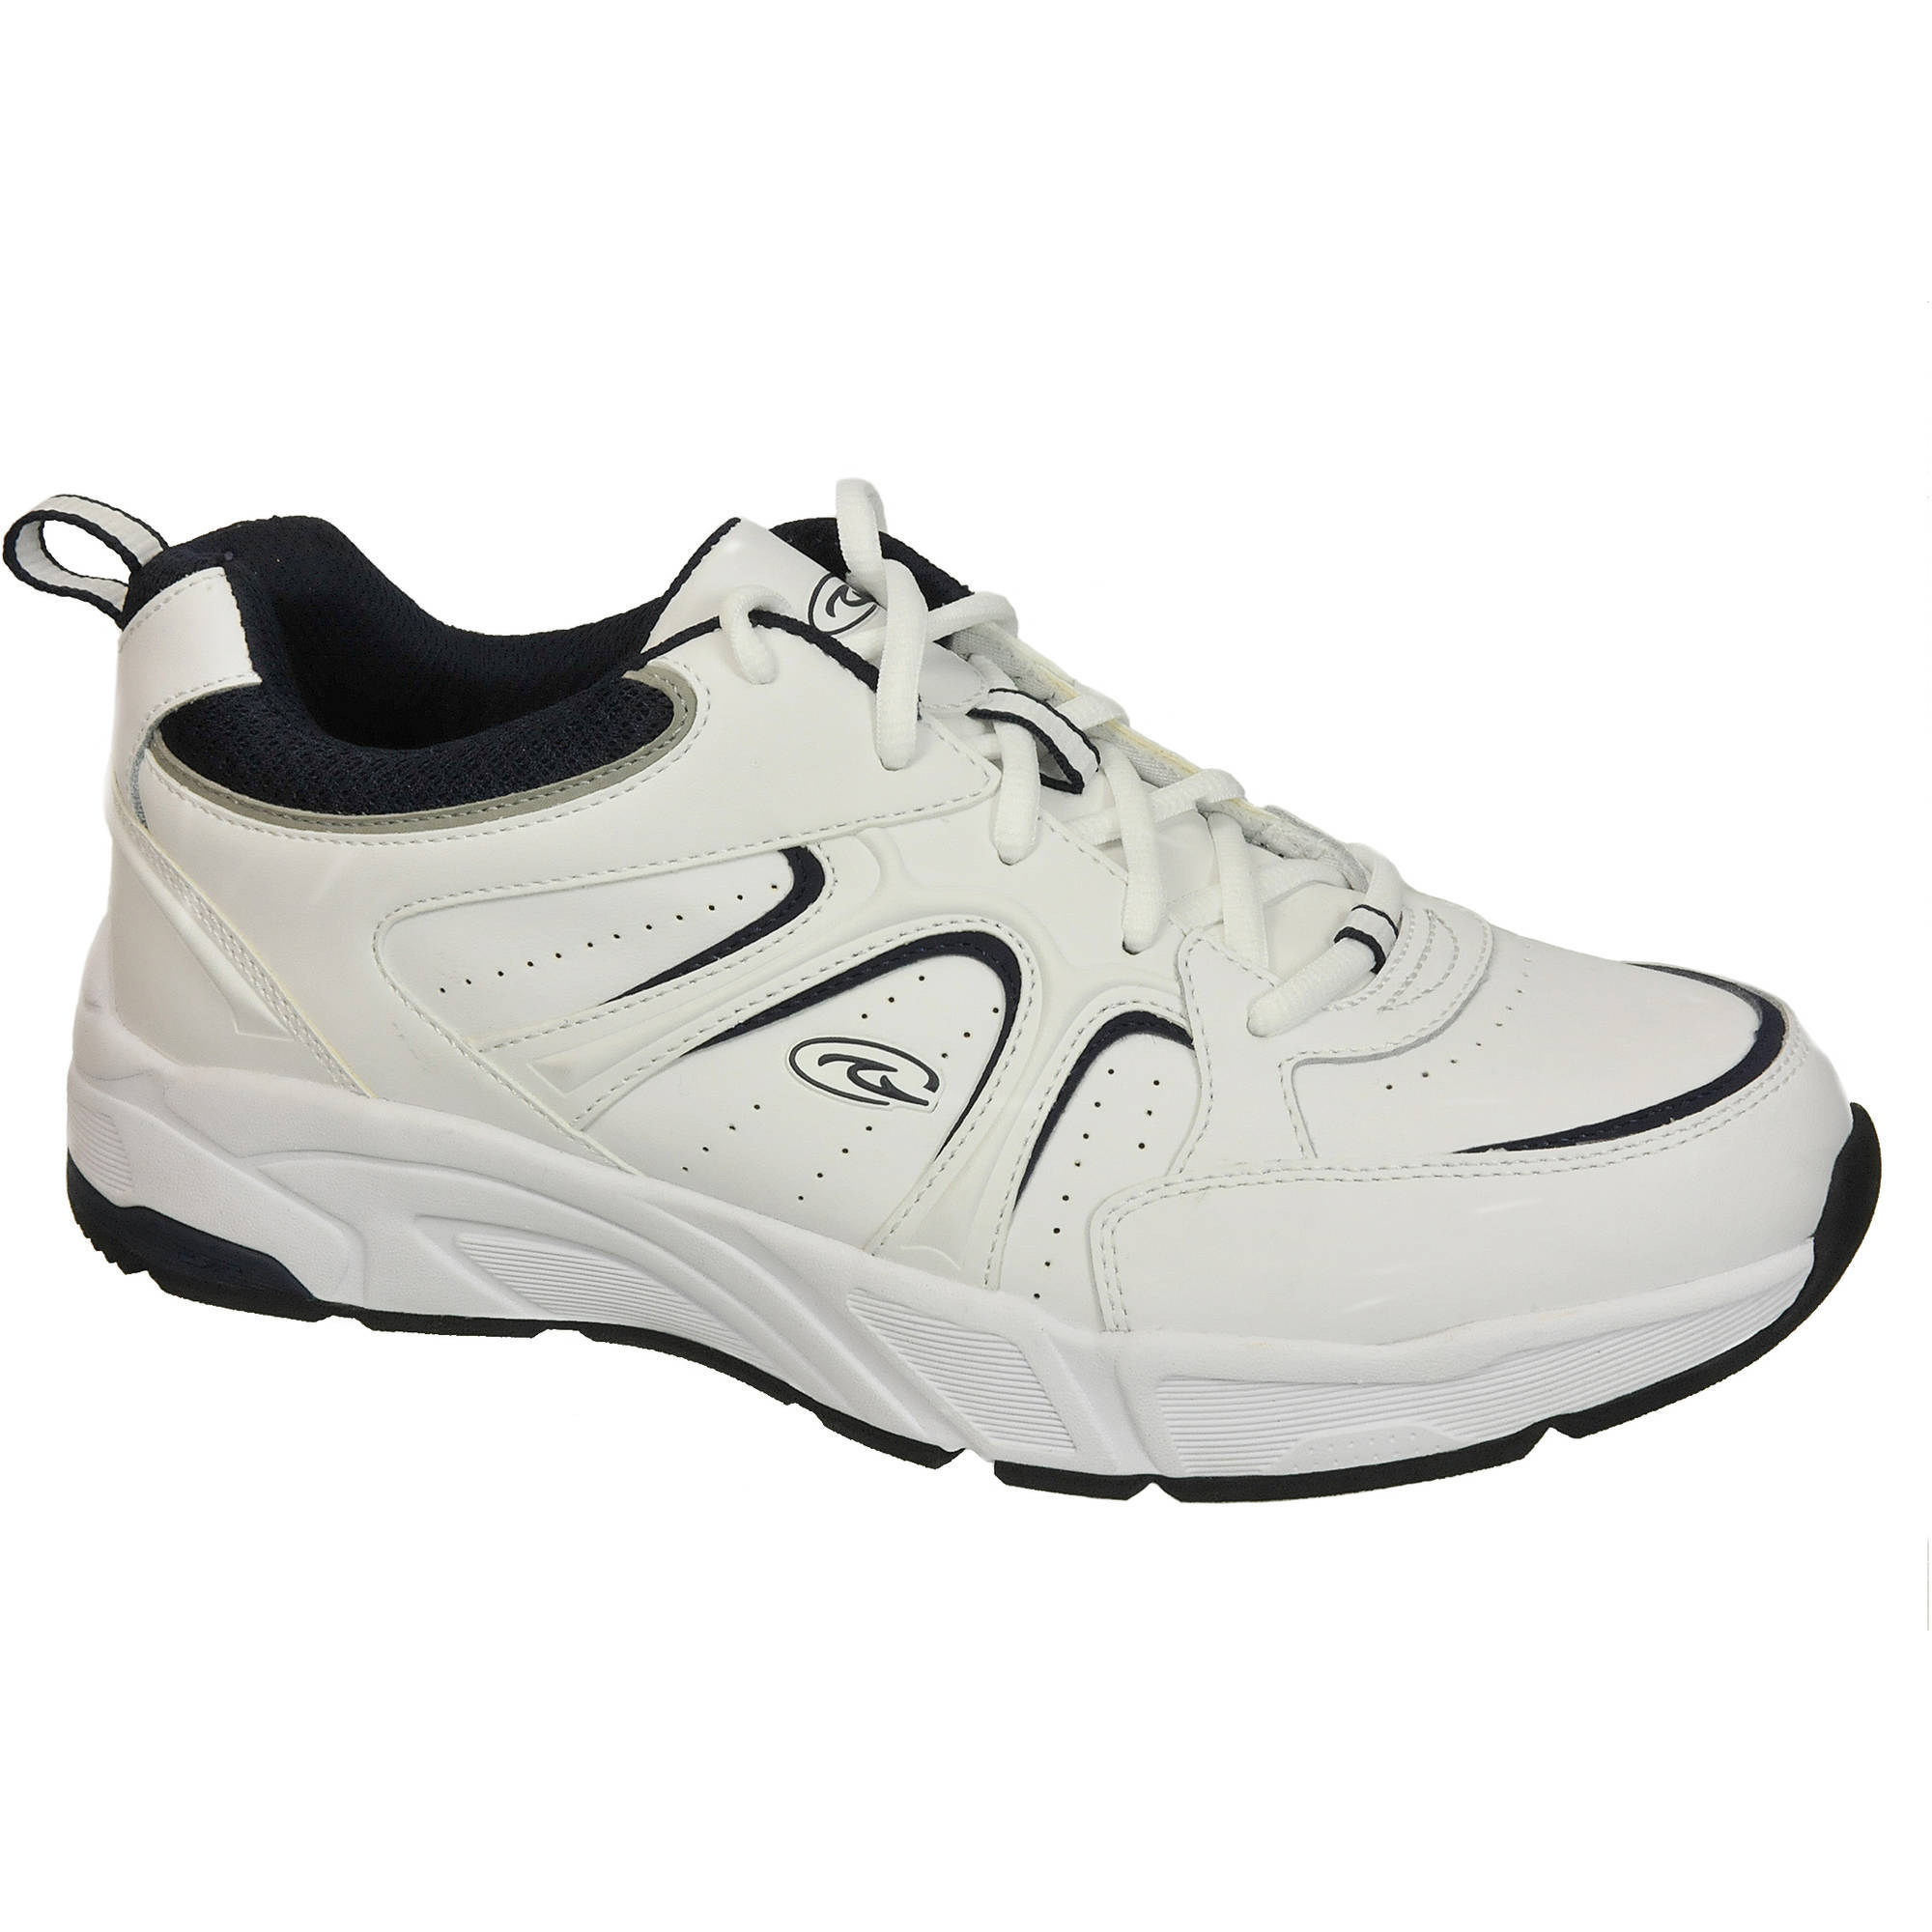 Dr. Scholl's Men's Phenom Wide Width Athletic Shoe